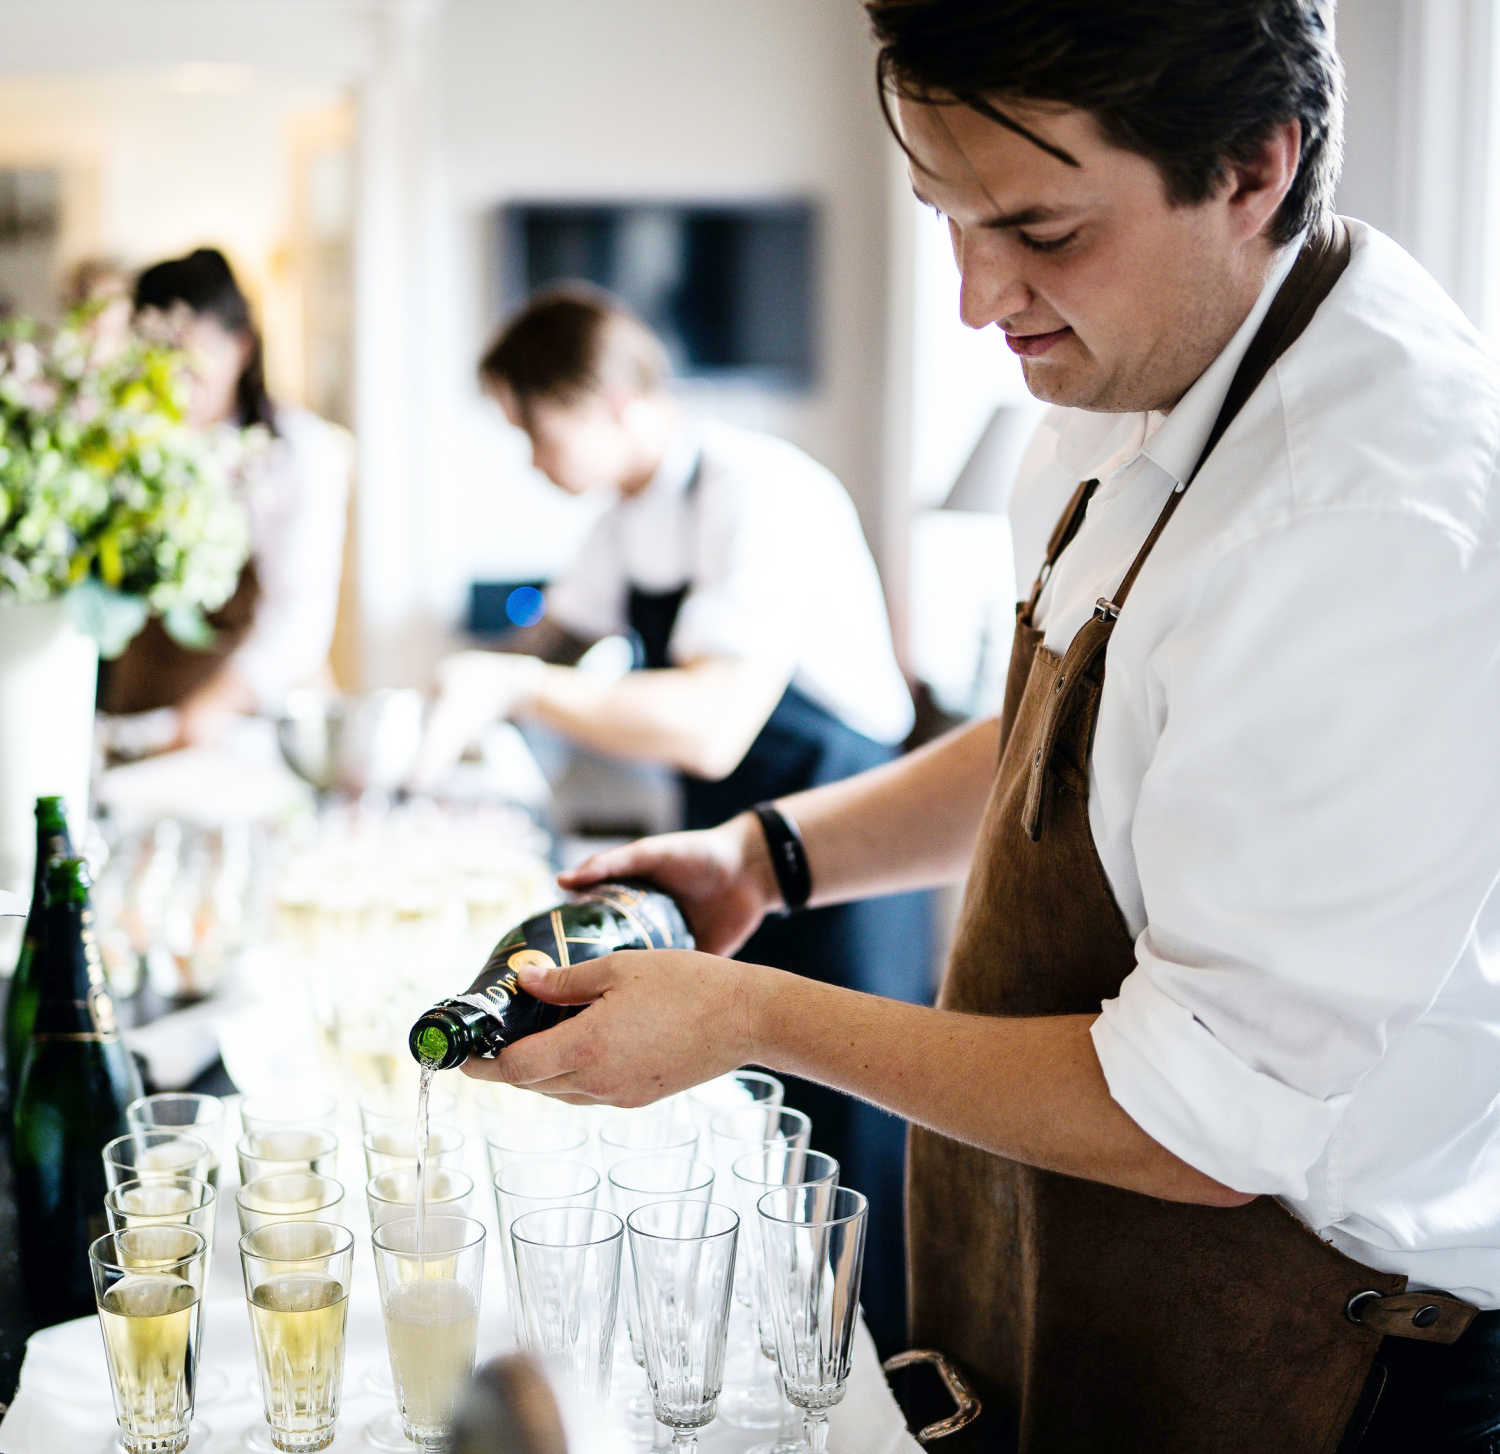 A staff member of Paradise Banquet Halls pouring champagne into glasses to be served at a wedding